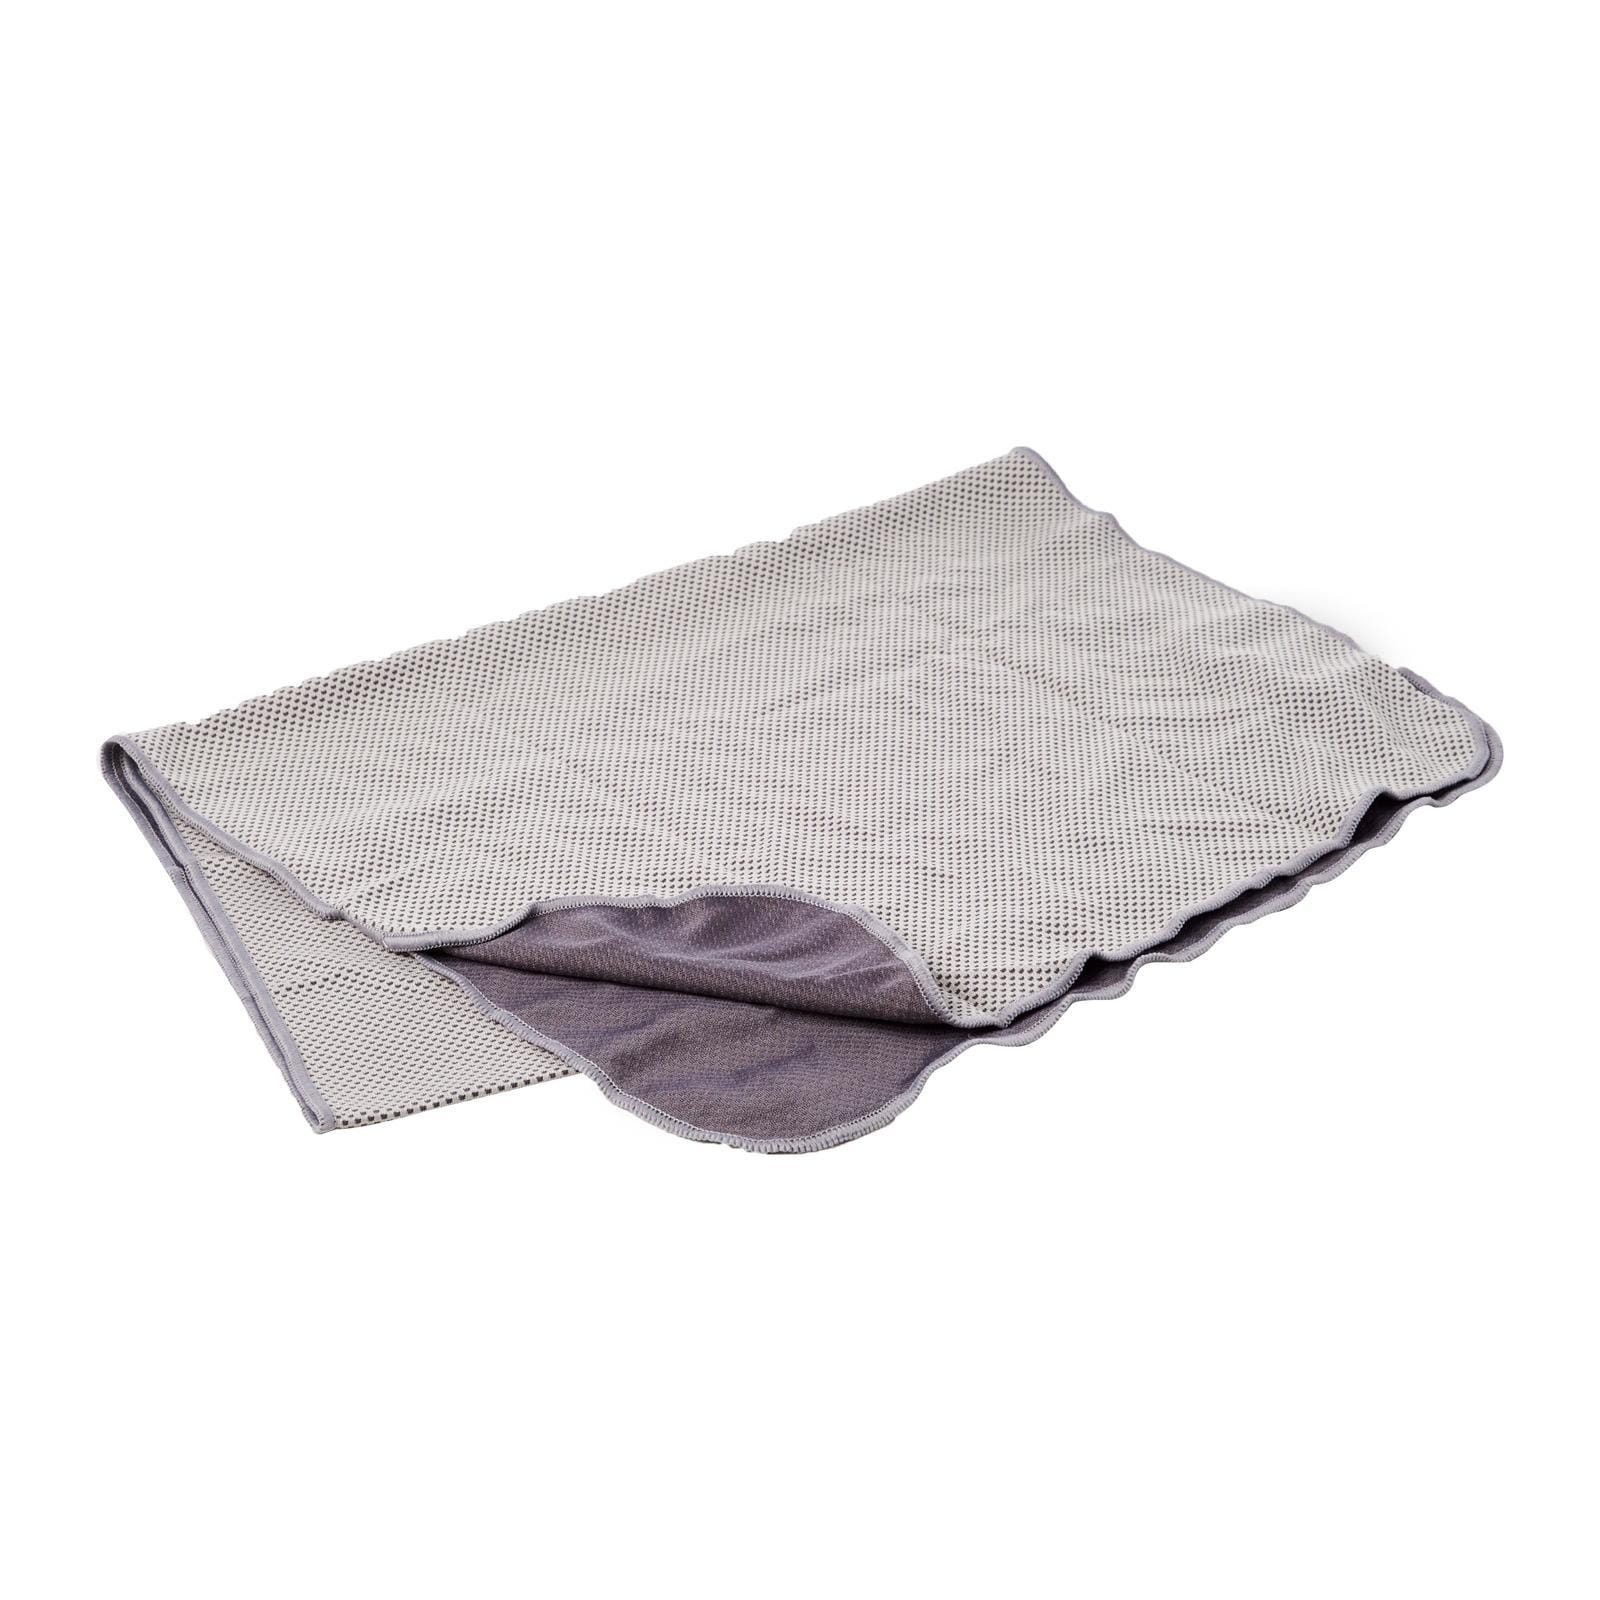 Coolite Sports Towel In Light Grey - FUNFIT